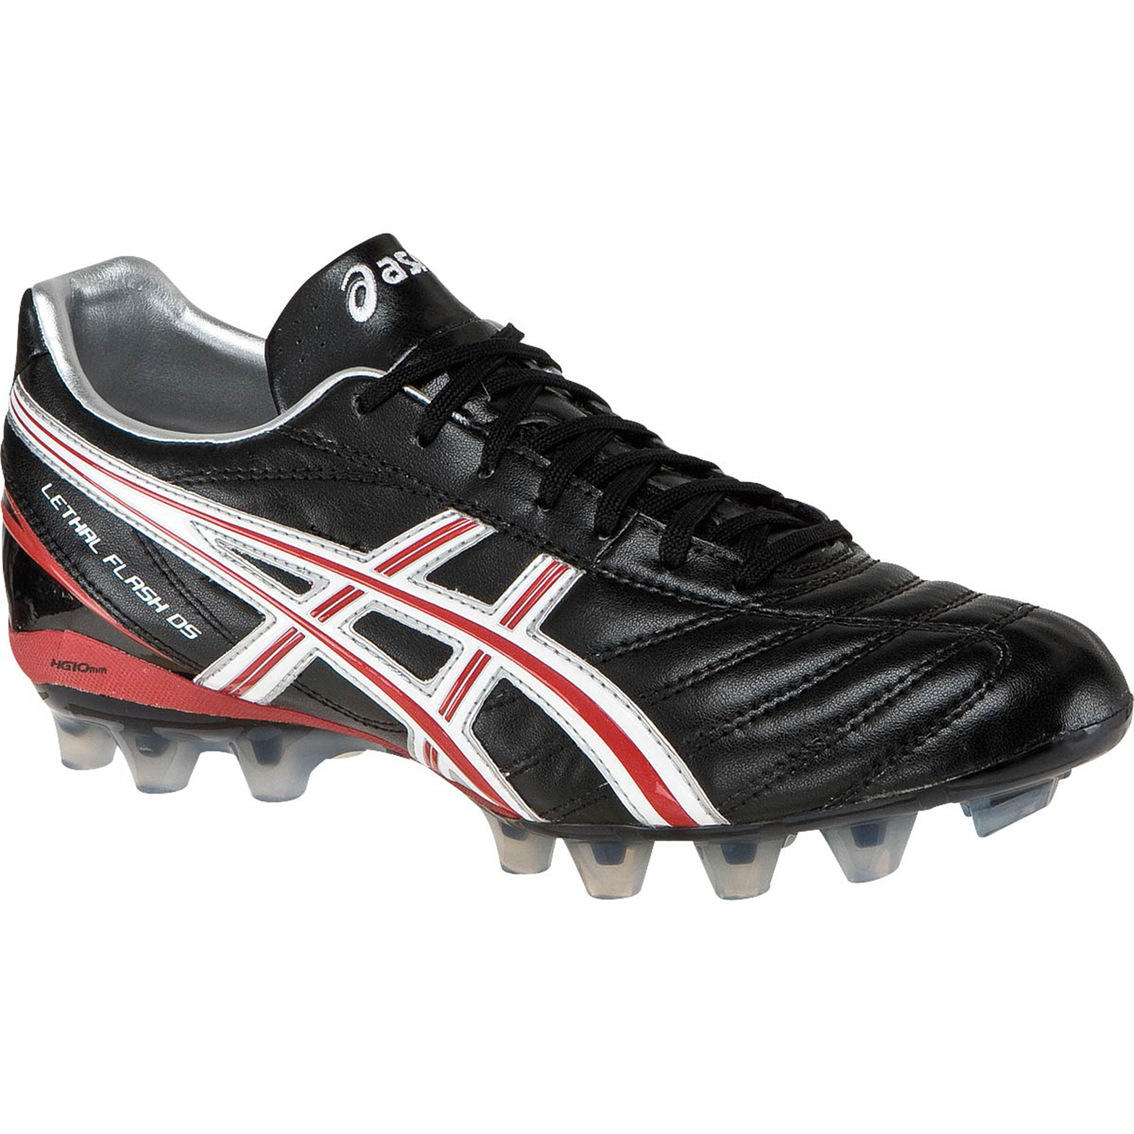 vei7dc4b authentic s asics soccer cleats